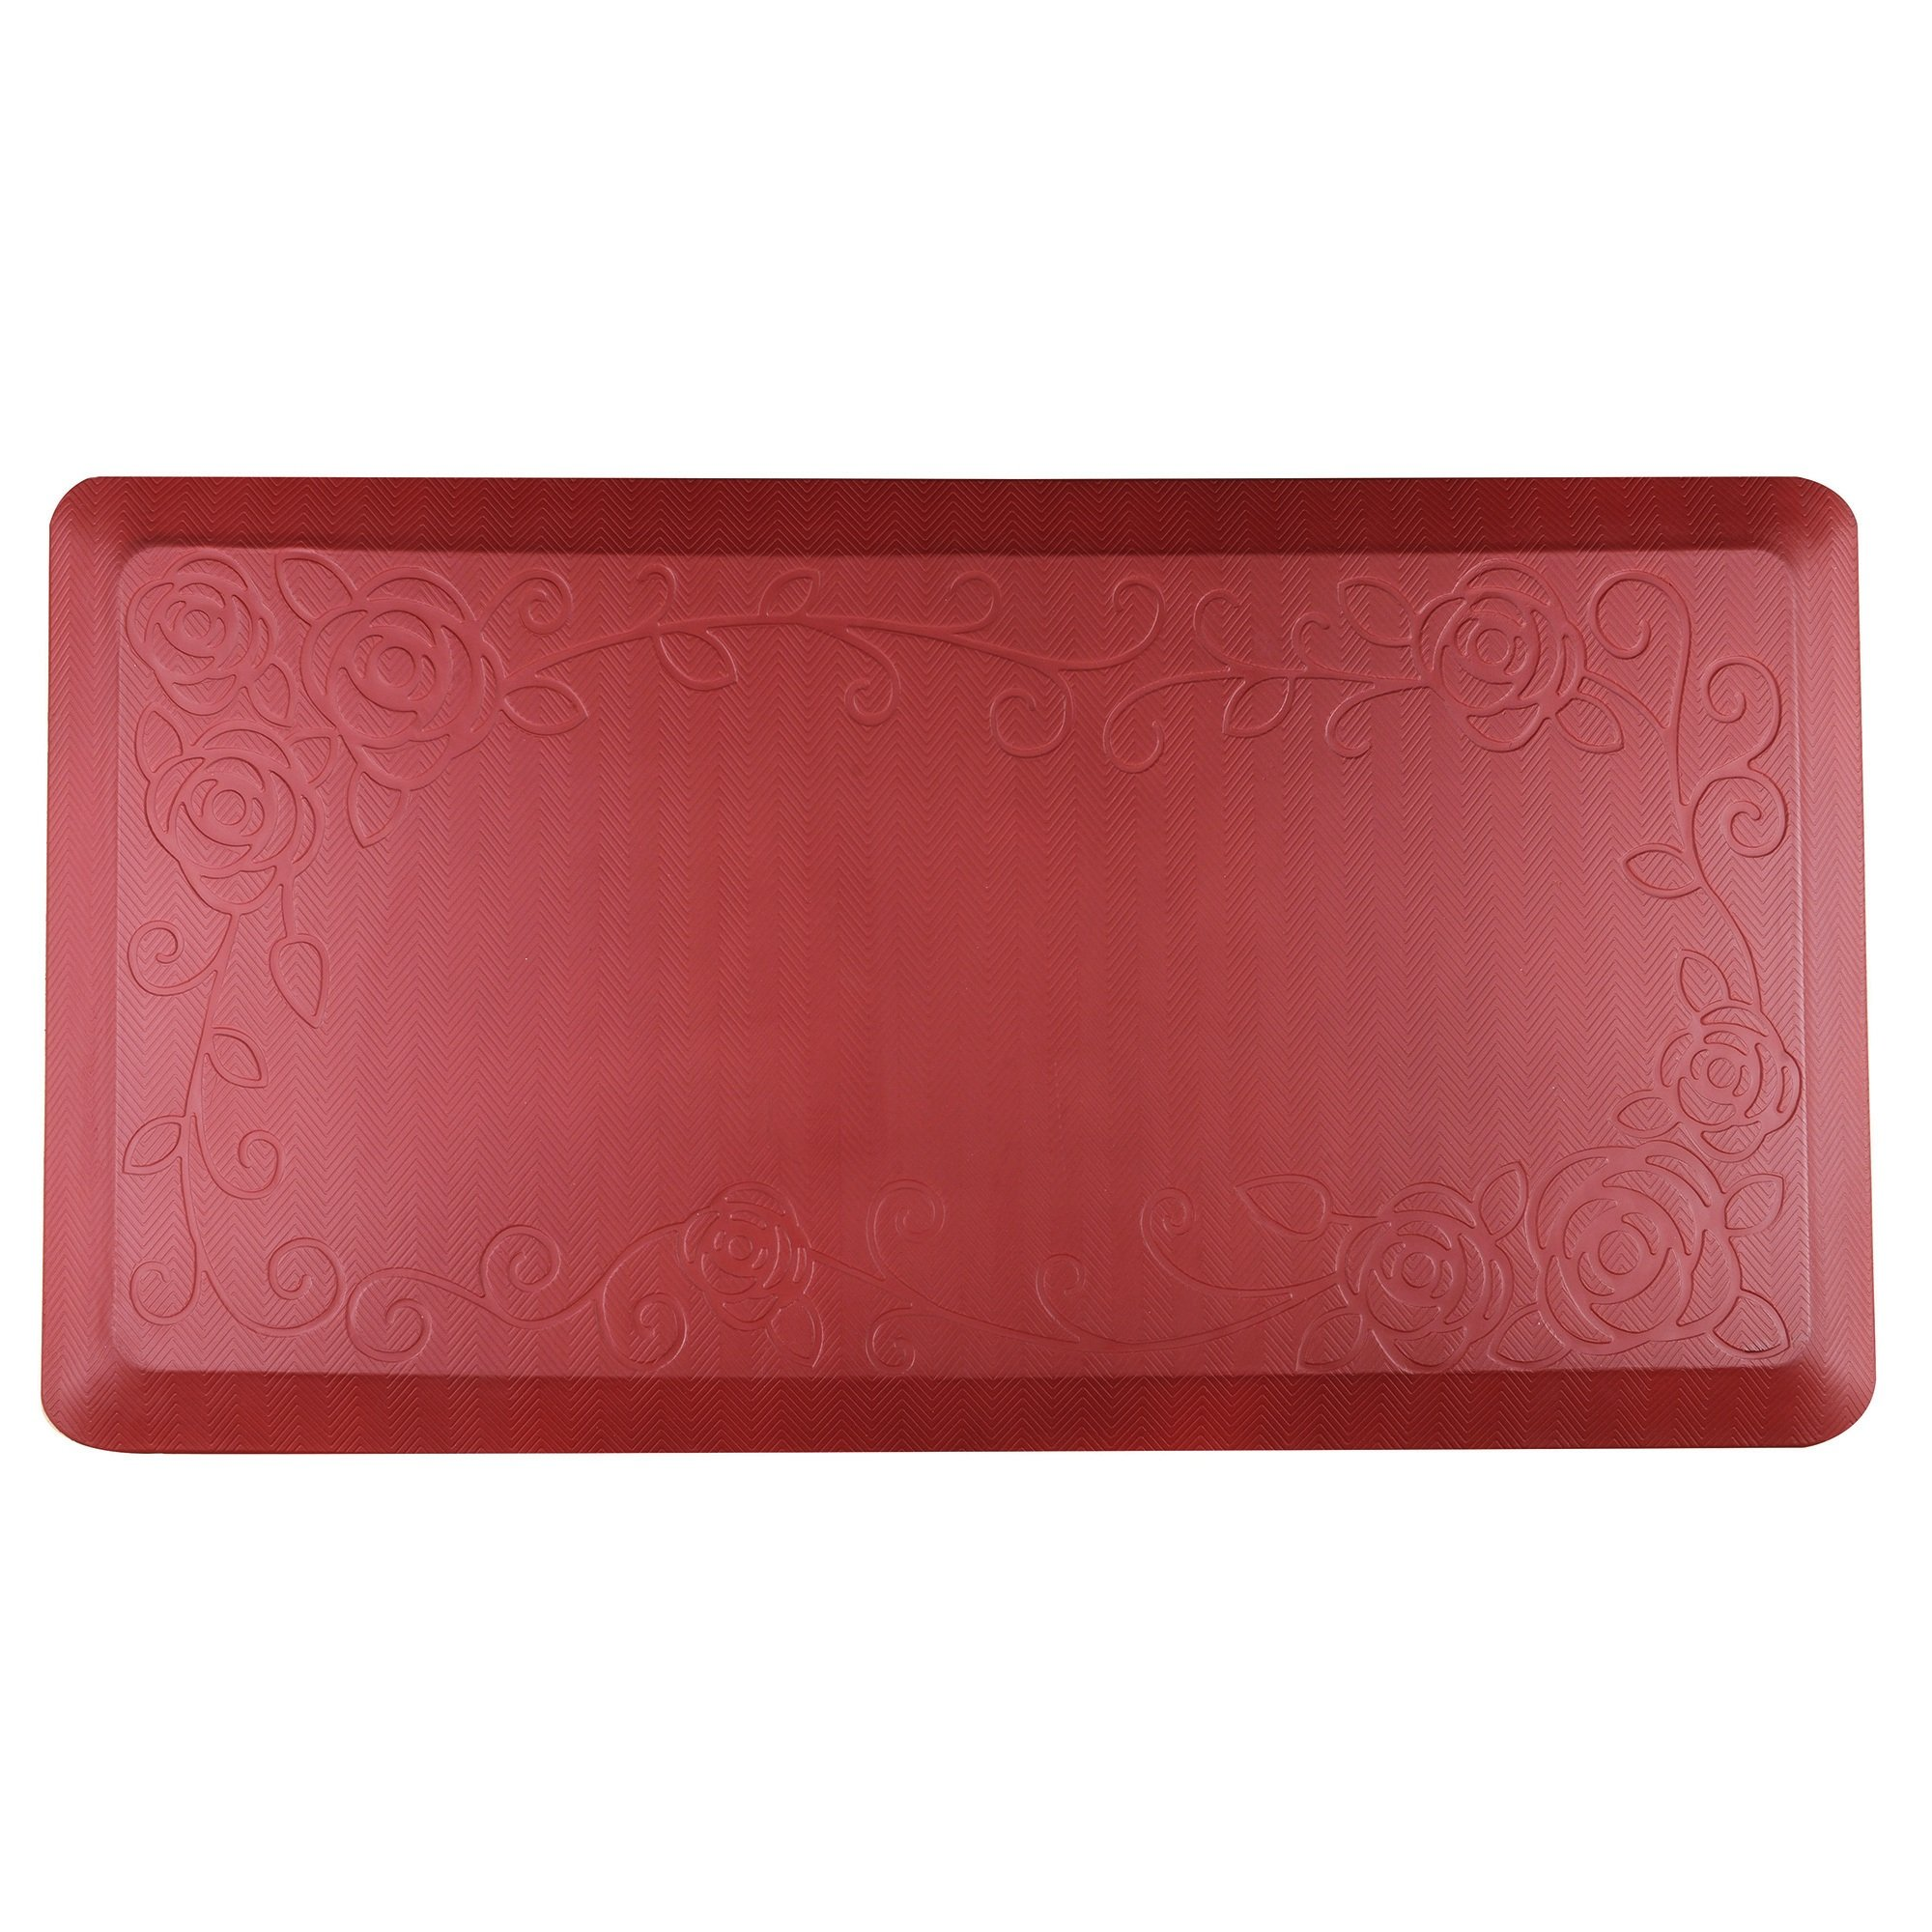 Cook N Home Anti-Fatigue Comfort Mat, 39 x 20'', Red, 3/4'' Thickness